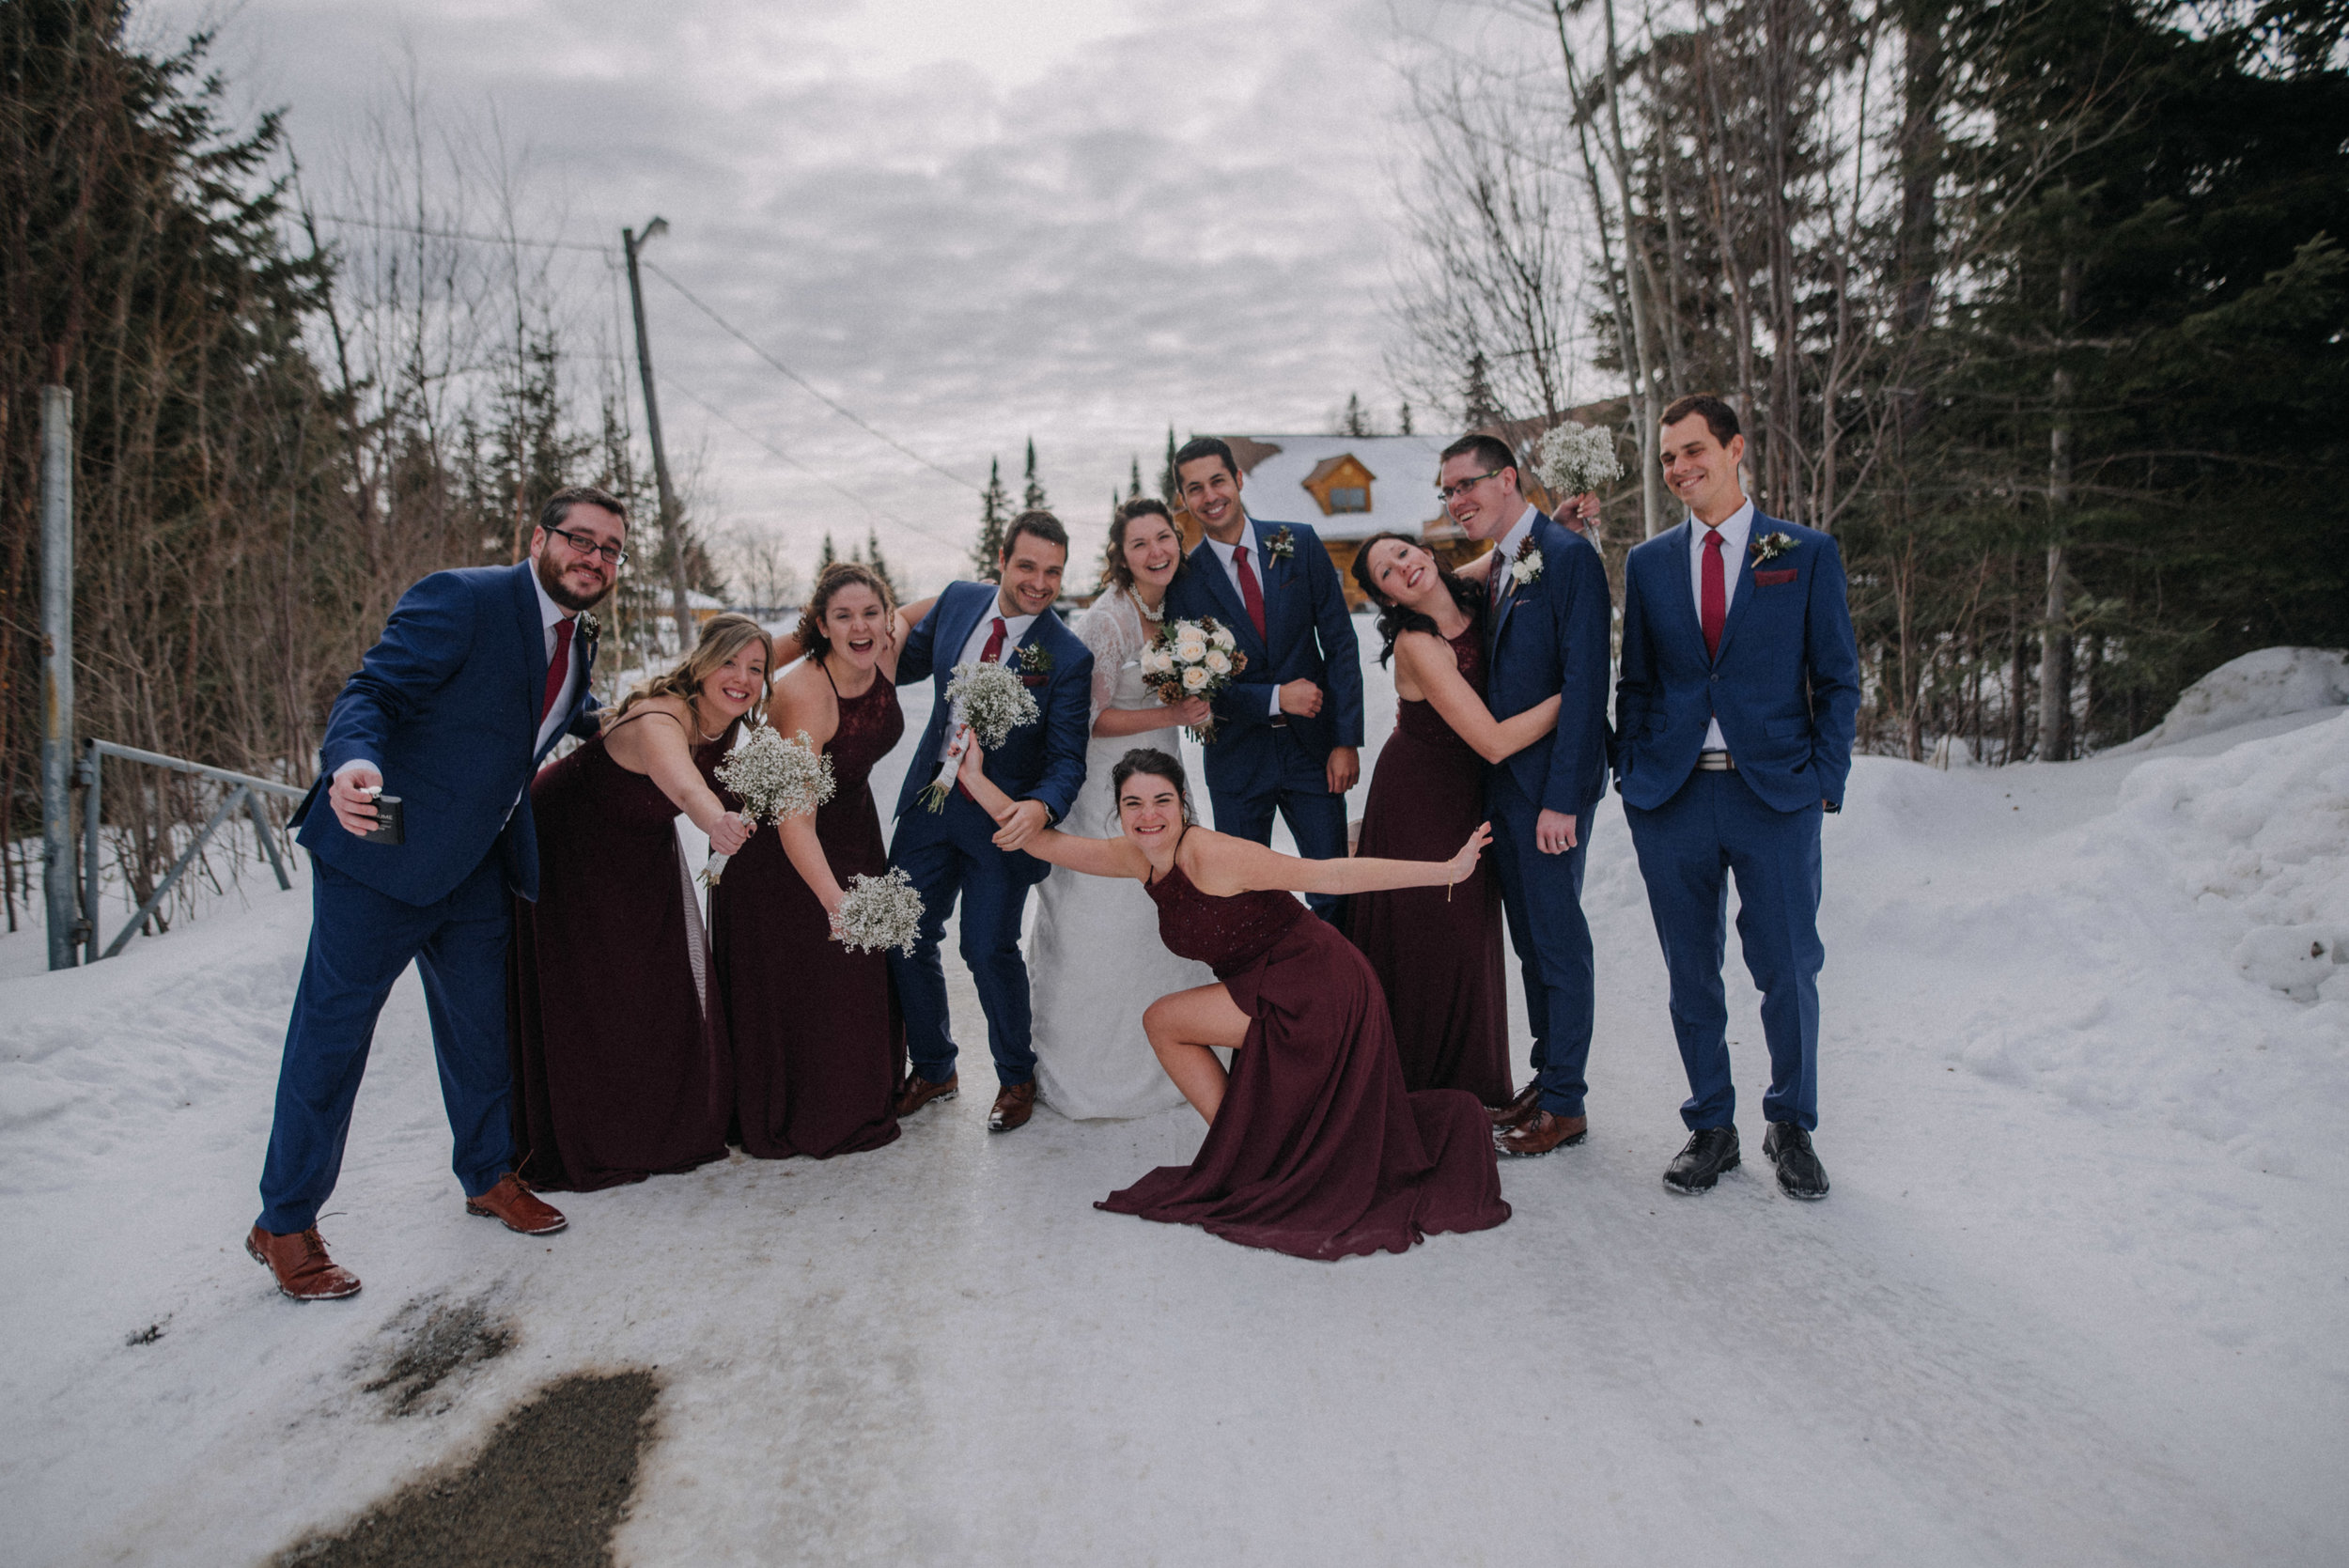 photographe_mariage_wedding_photographer_ottawa_gatineau_lifestyle_documentary_valdor_2018 (36).jpg